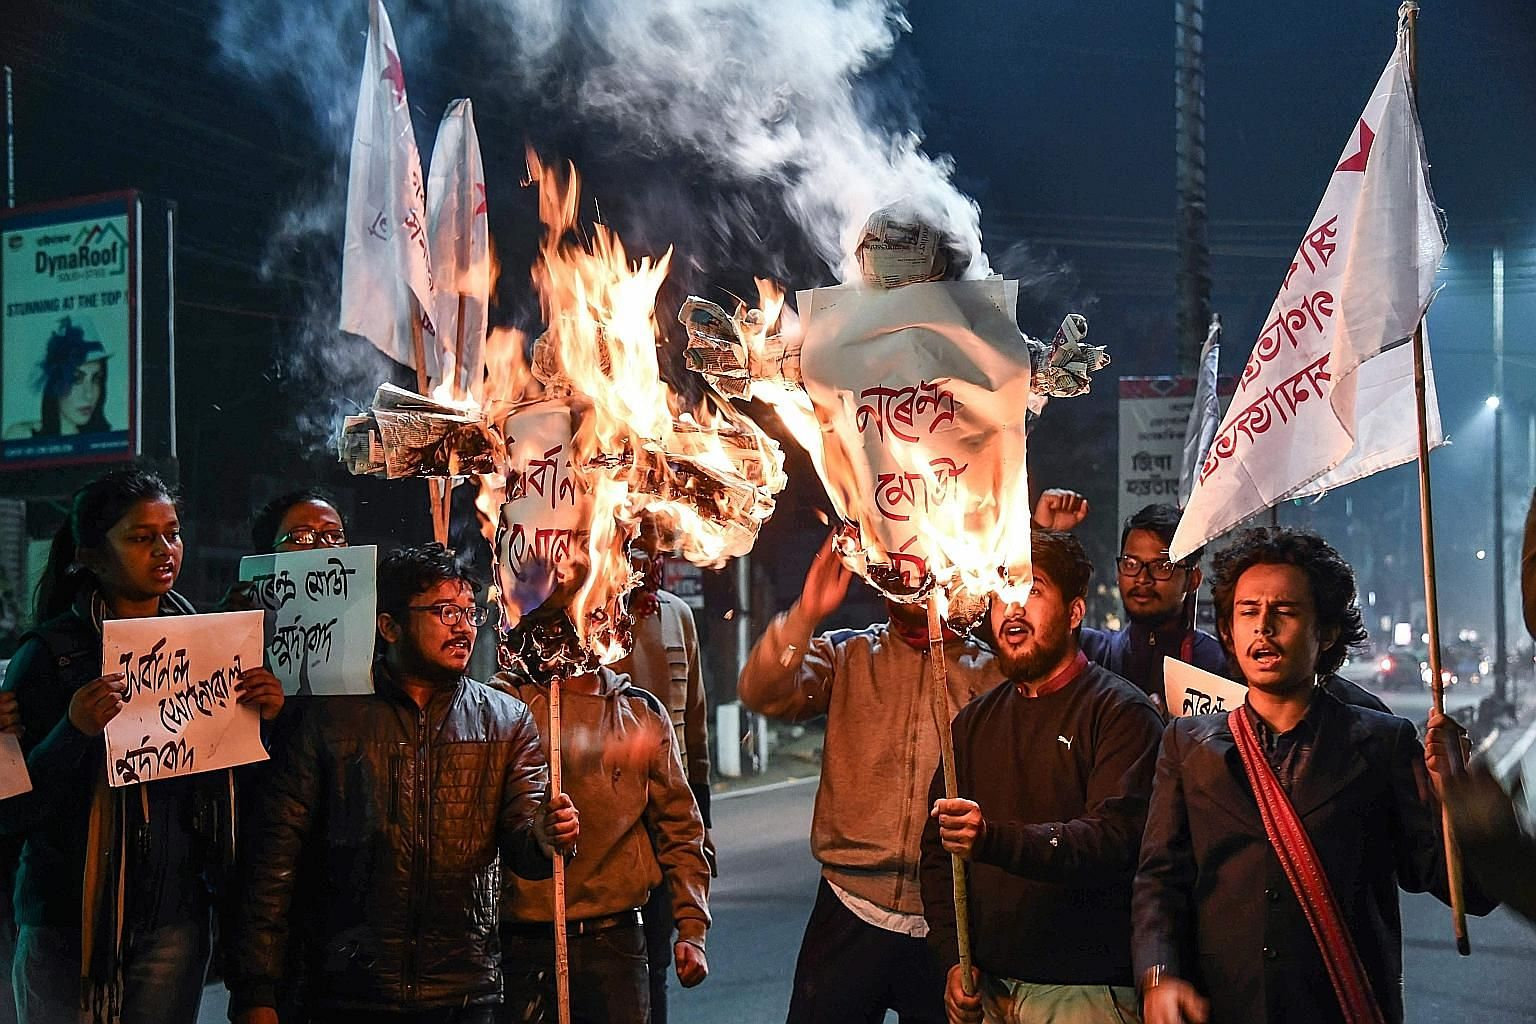 Activists burning effigies of India's Prime Minister Narendra Modi and Assam's Chief Minister on Tuesday after the country's Lower House of Parliament passed a Bill granting citizenship to non-Muslim migrants from three neighbouring countries, includ